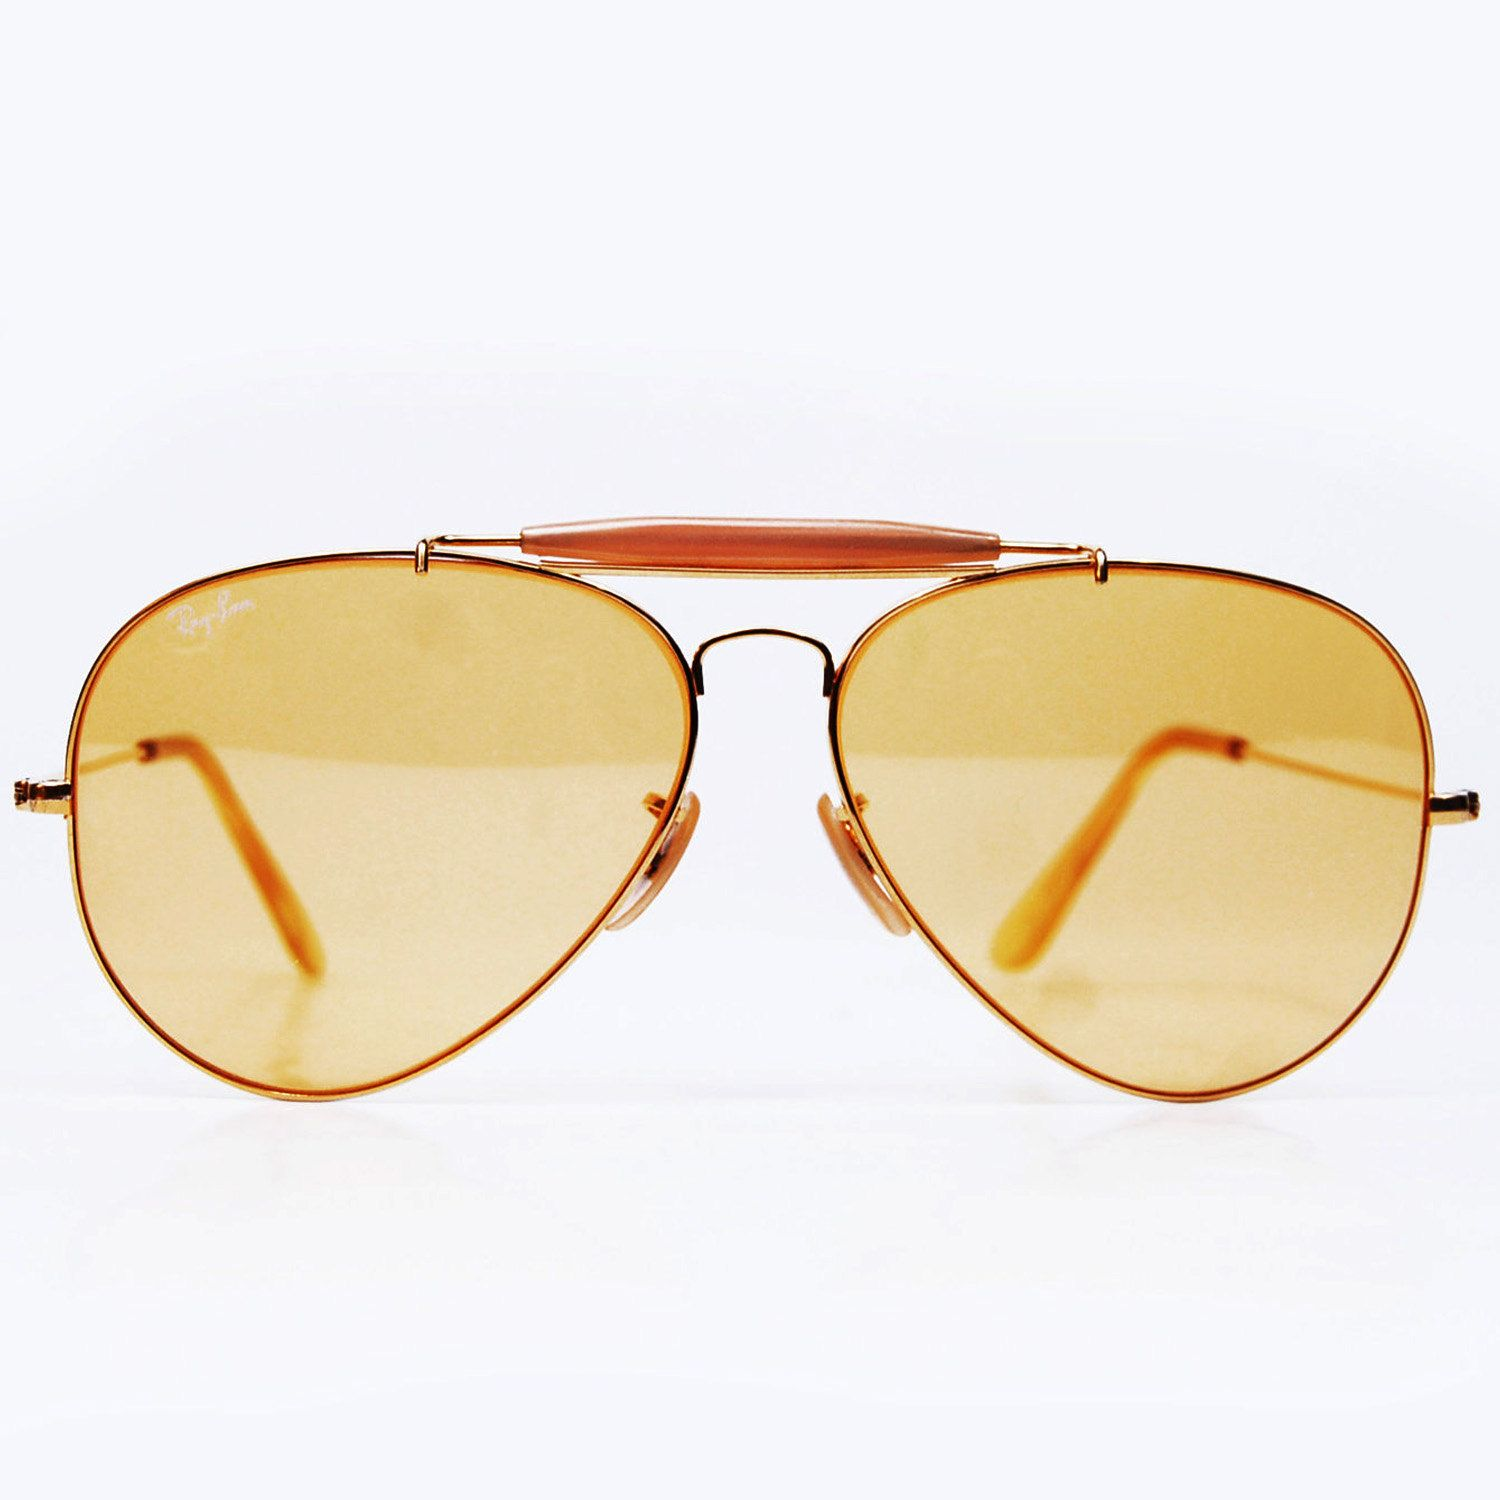 00fa2e063a4 Vintage Ray Ban Sunglasses. Bausch and Lomb Ambermatic Yellow Aviators 62mm